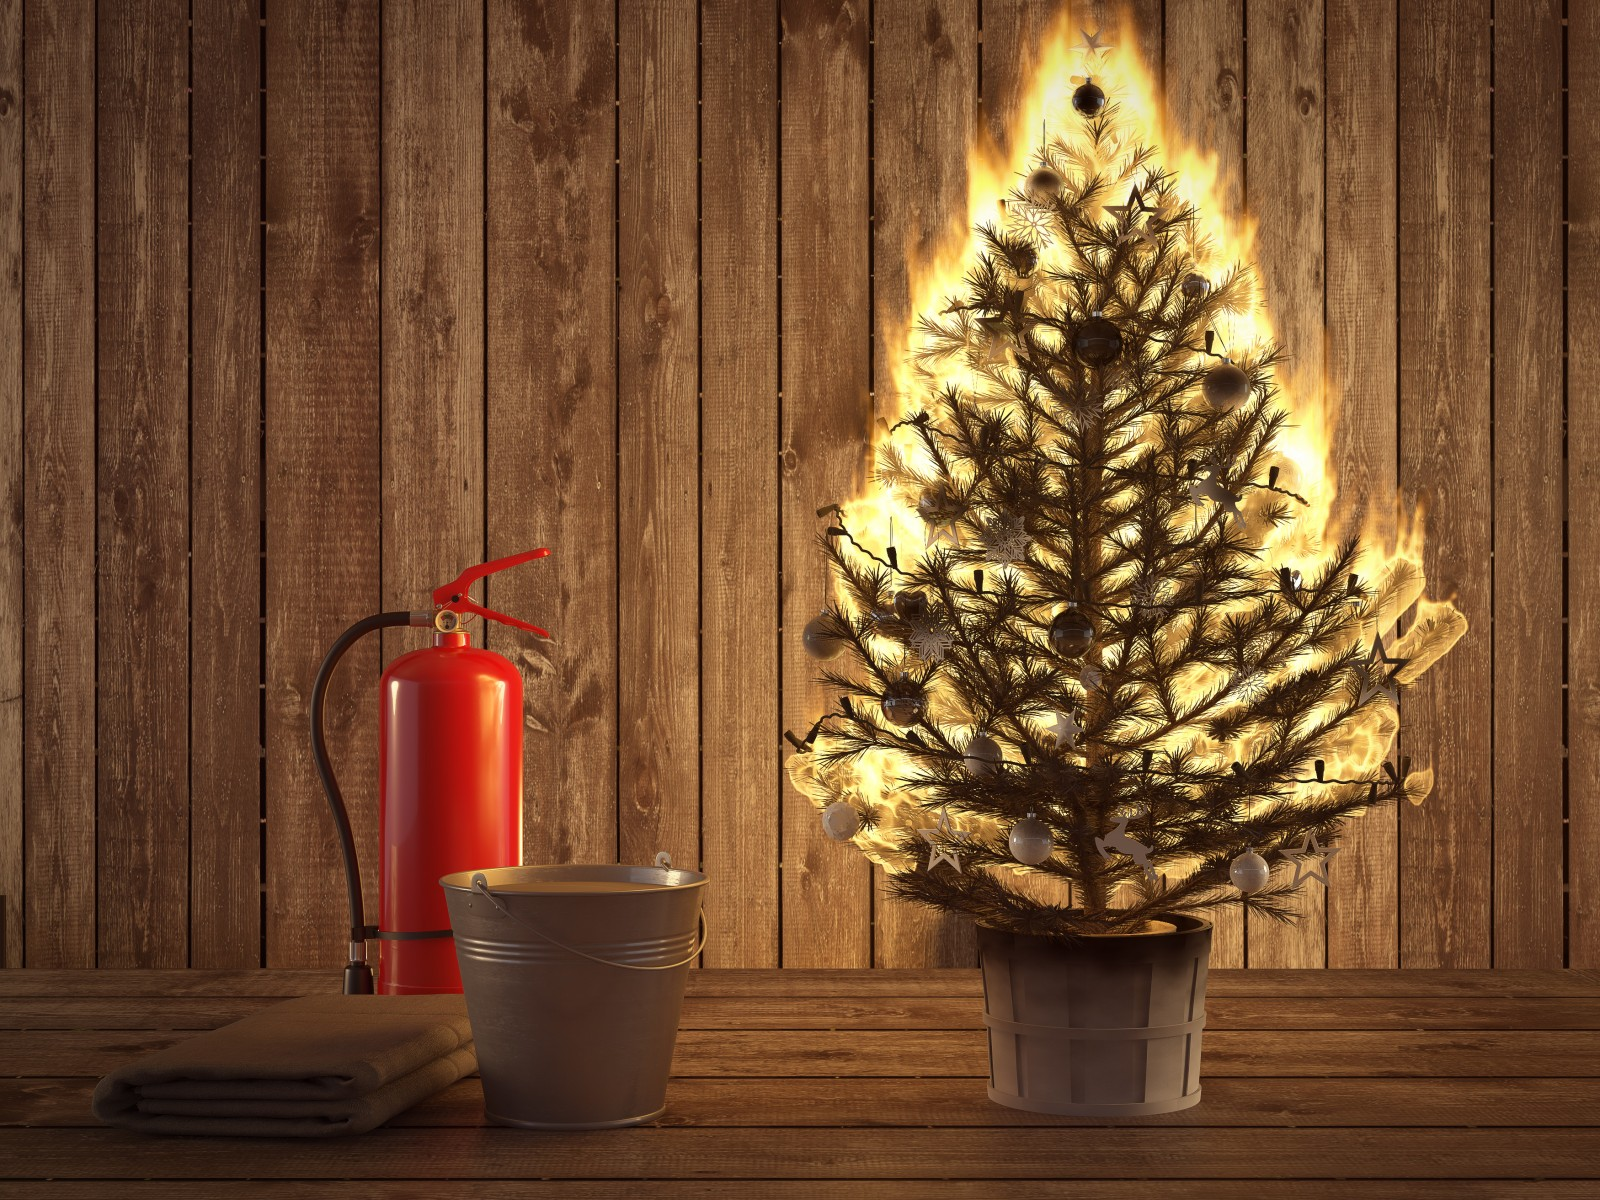 Holiday Fire Dangers